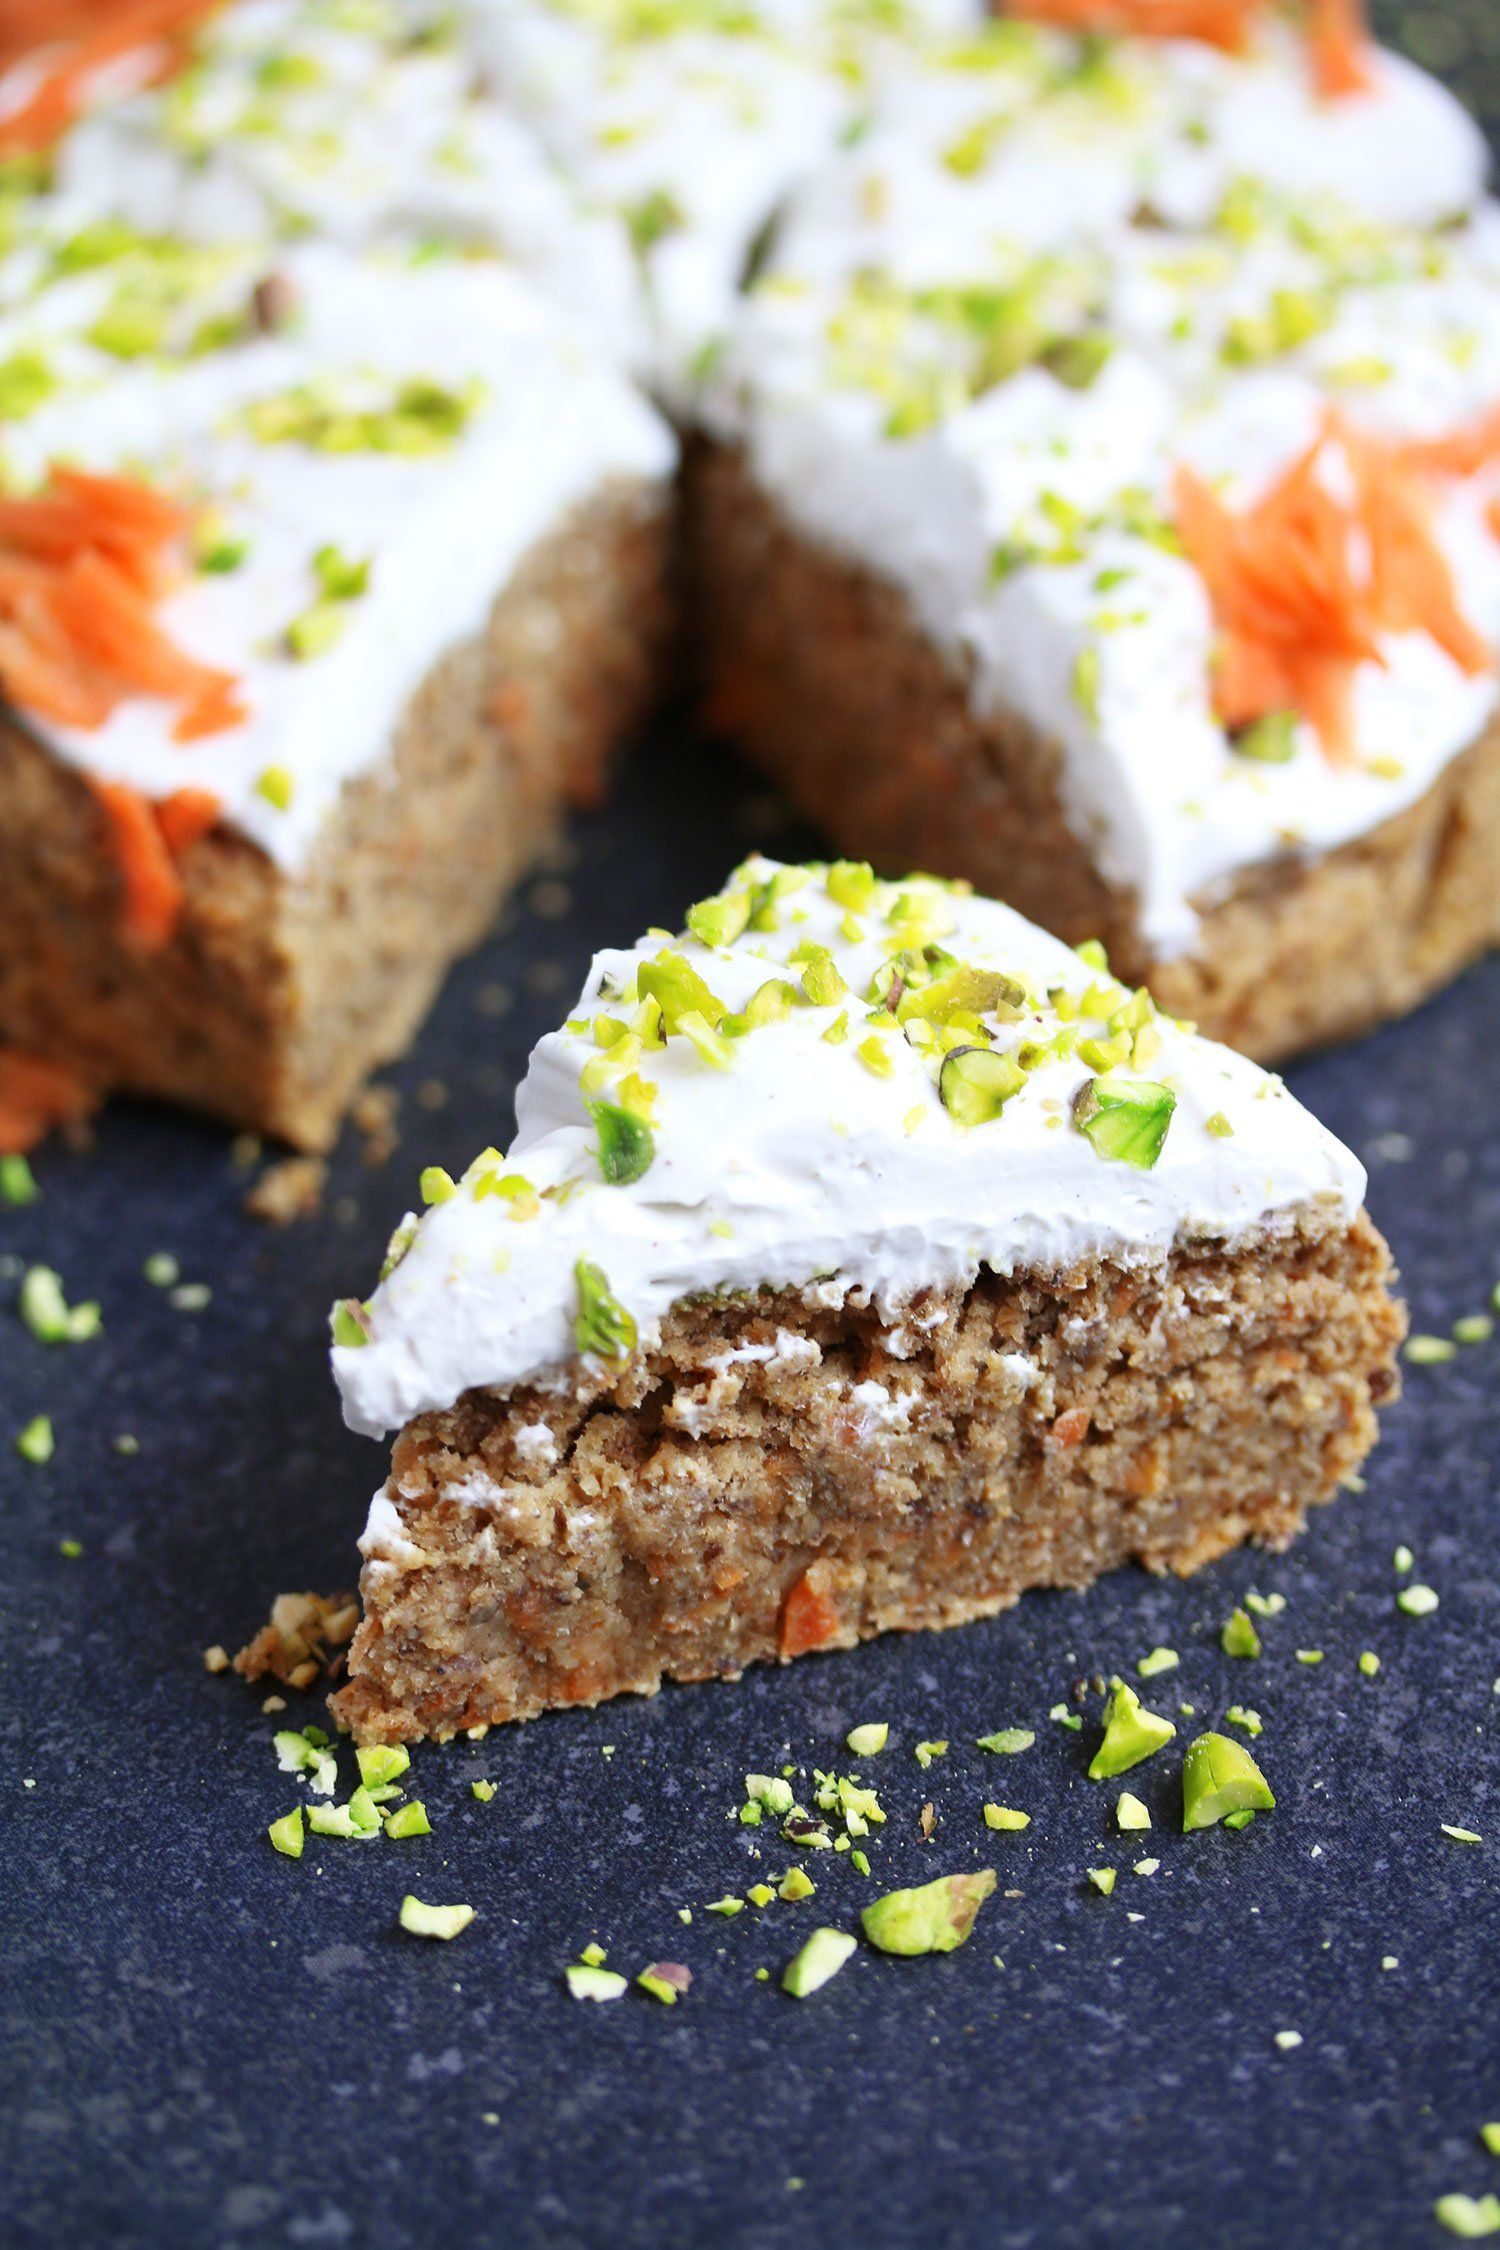 Vegan gluten free carrot cake uk health blog nadias healthy vegan gluten free carrot cake uk health blog nadias healthy kitchen forumfinder Choice Image